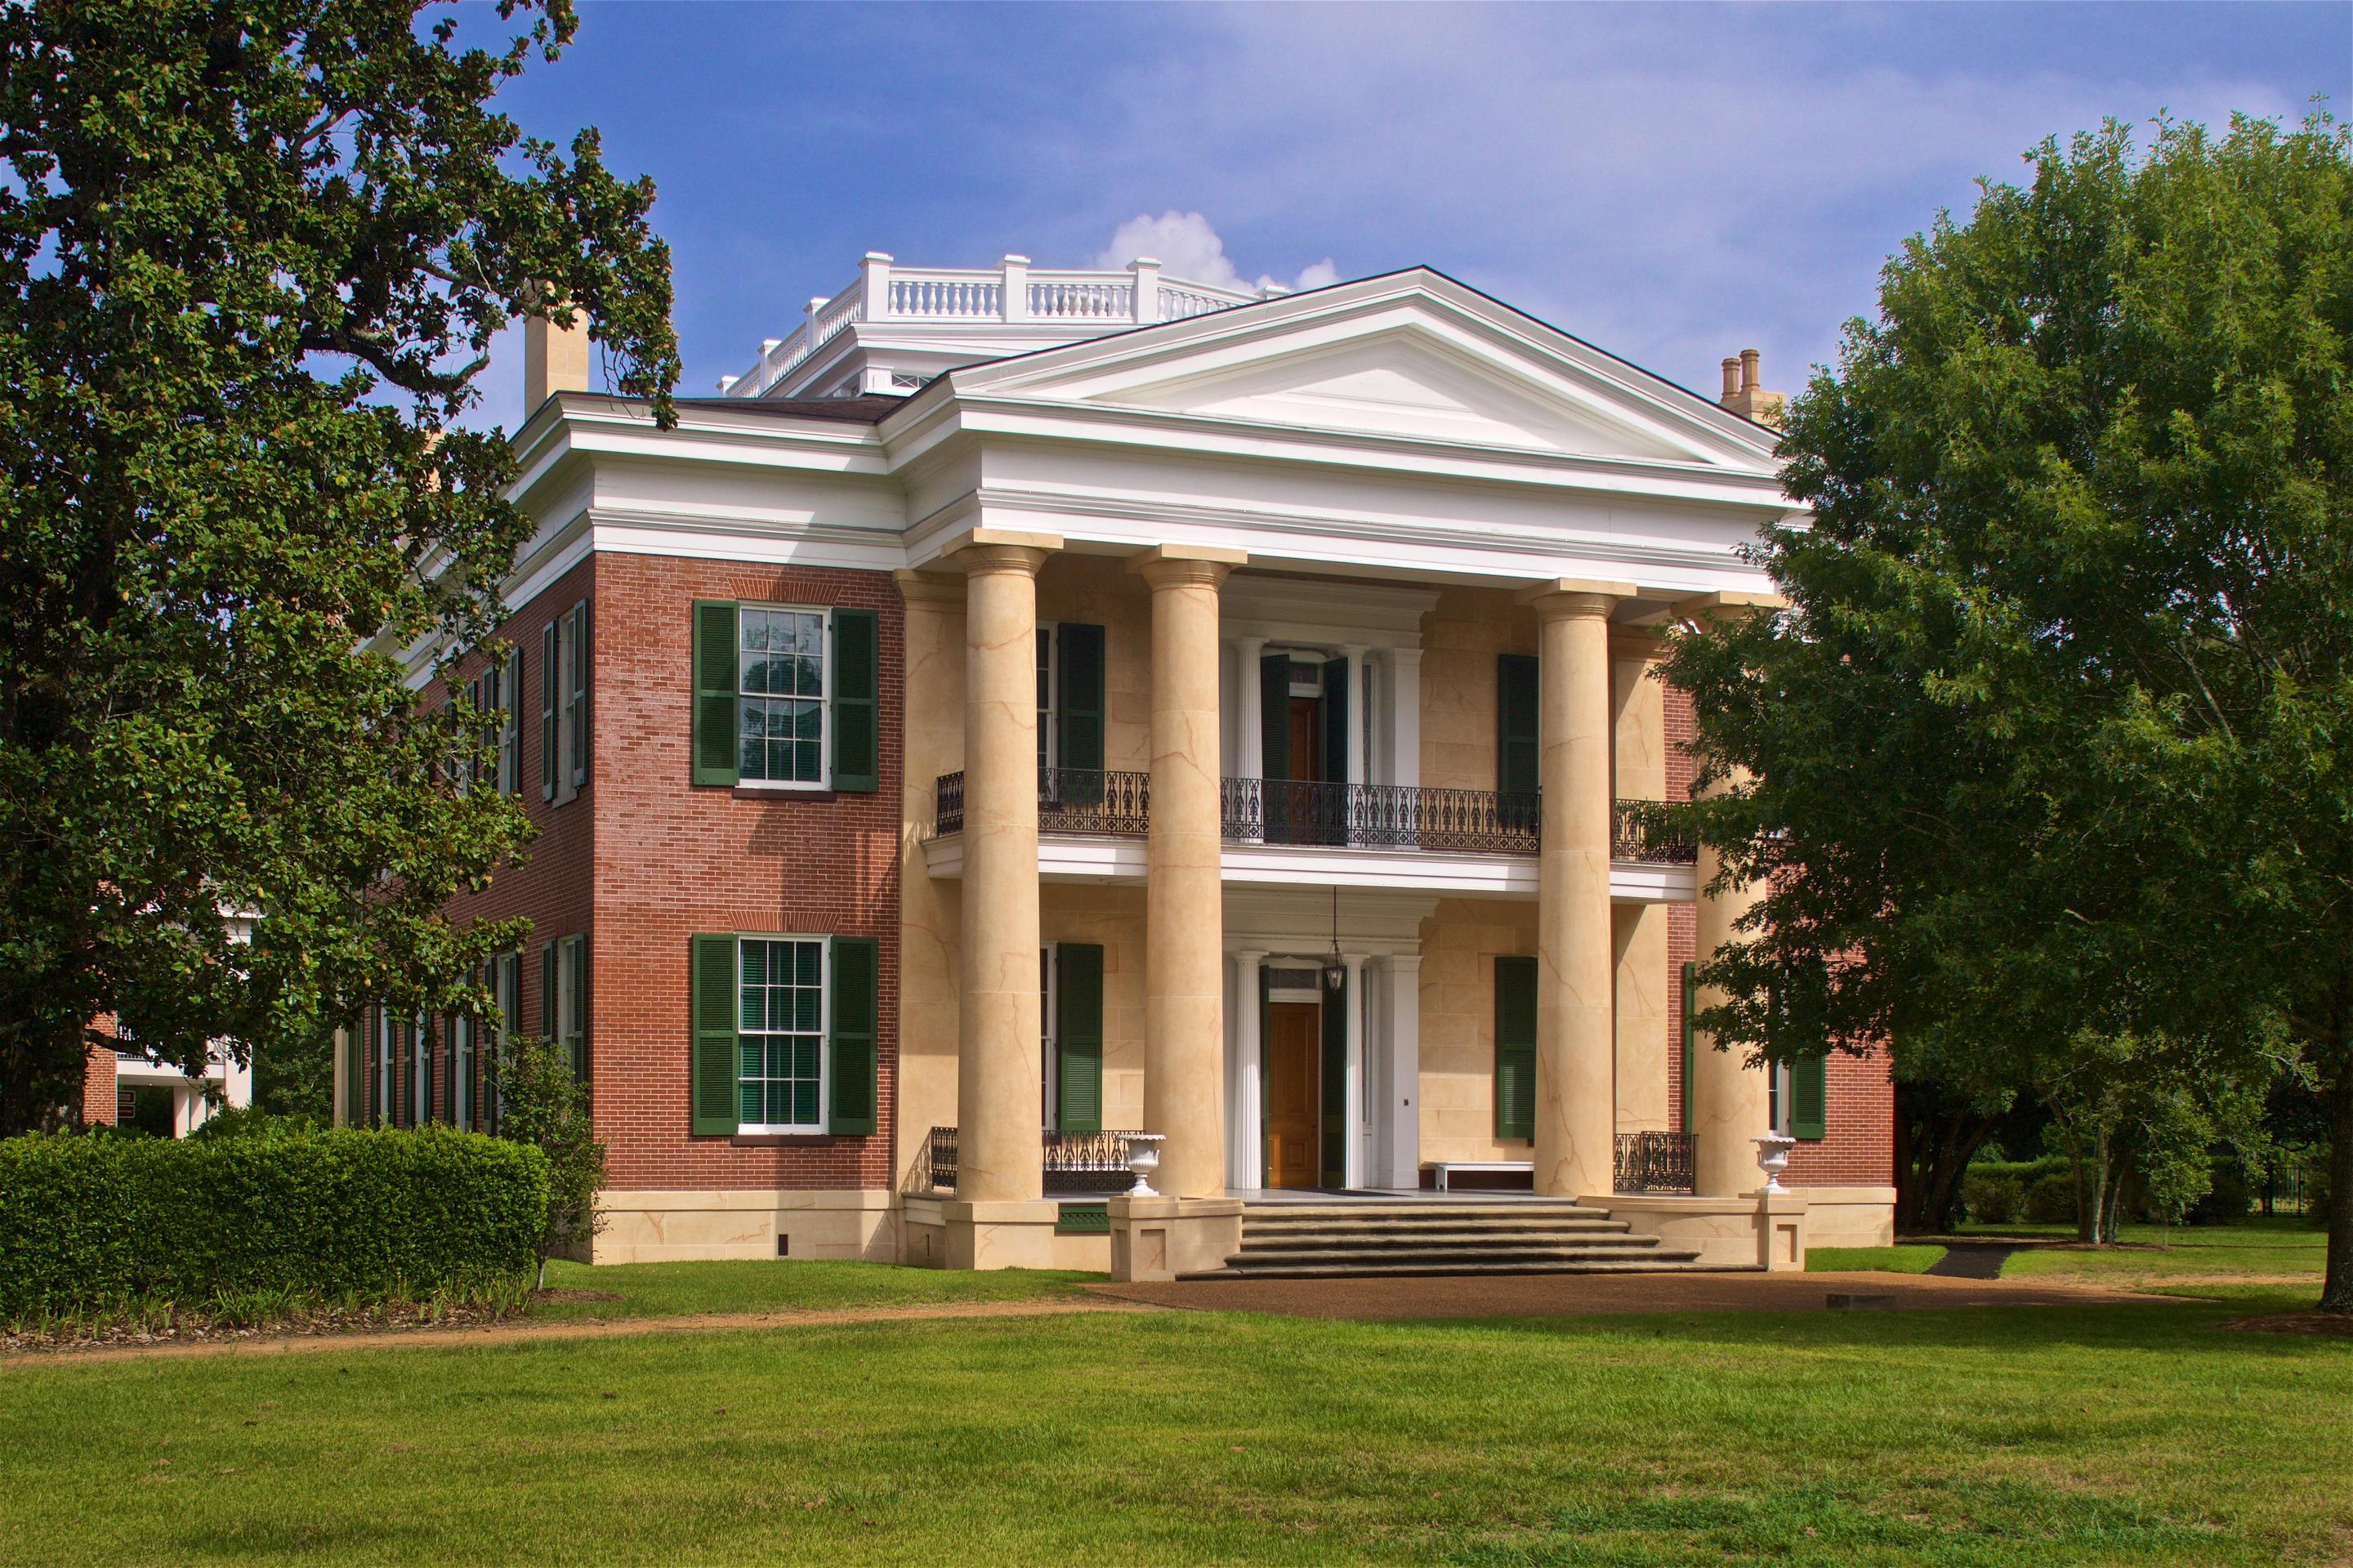 Melrose MansionMelrose and its landscape present a comprehensive picture of the Southern planter class and the enslaved people who lived and worked there.